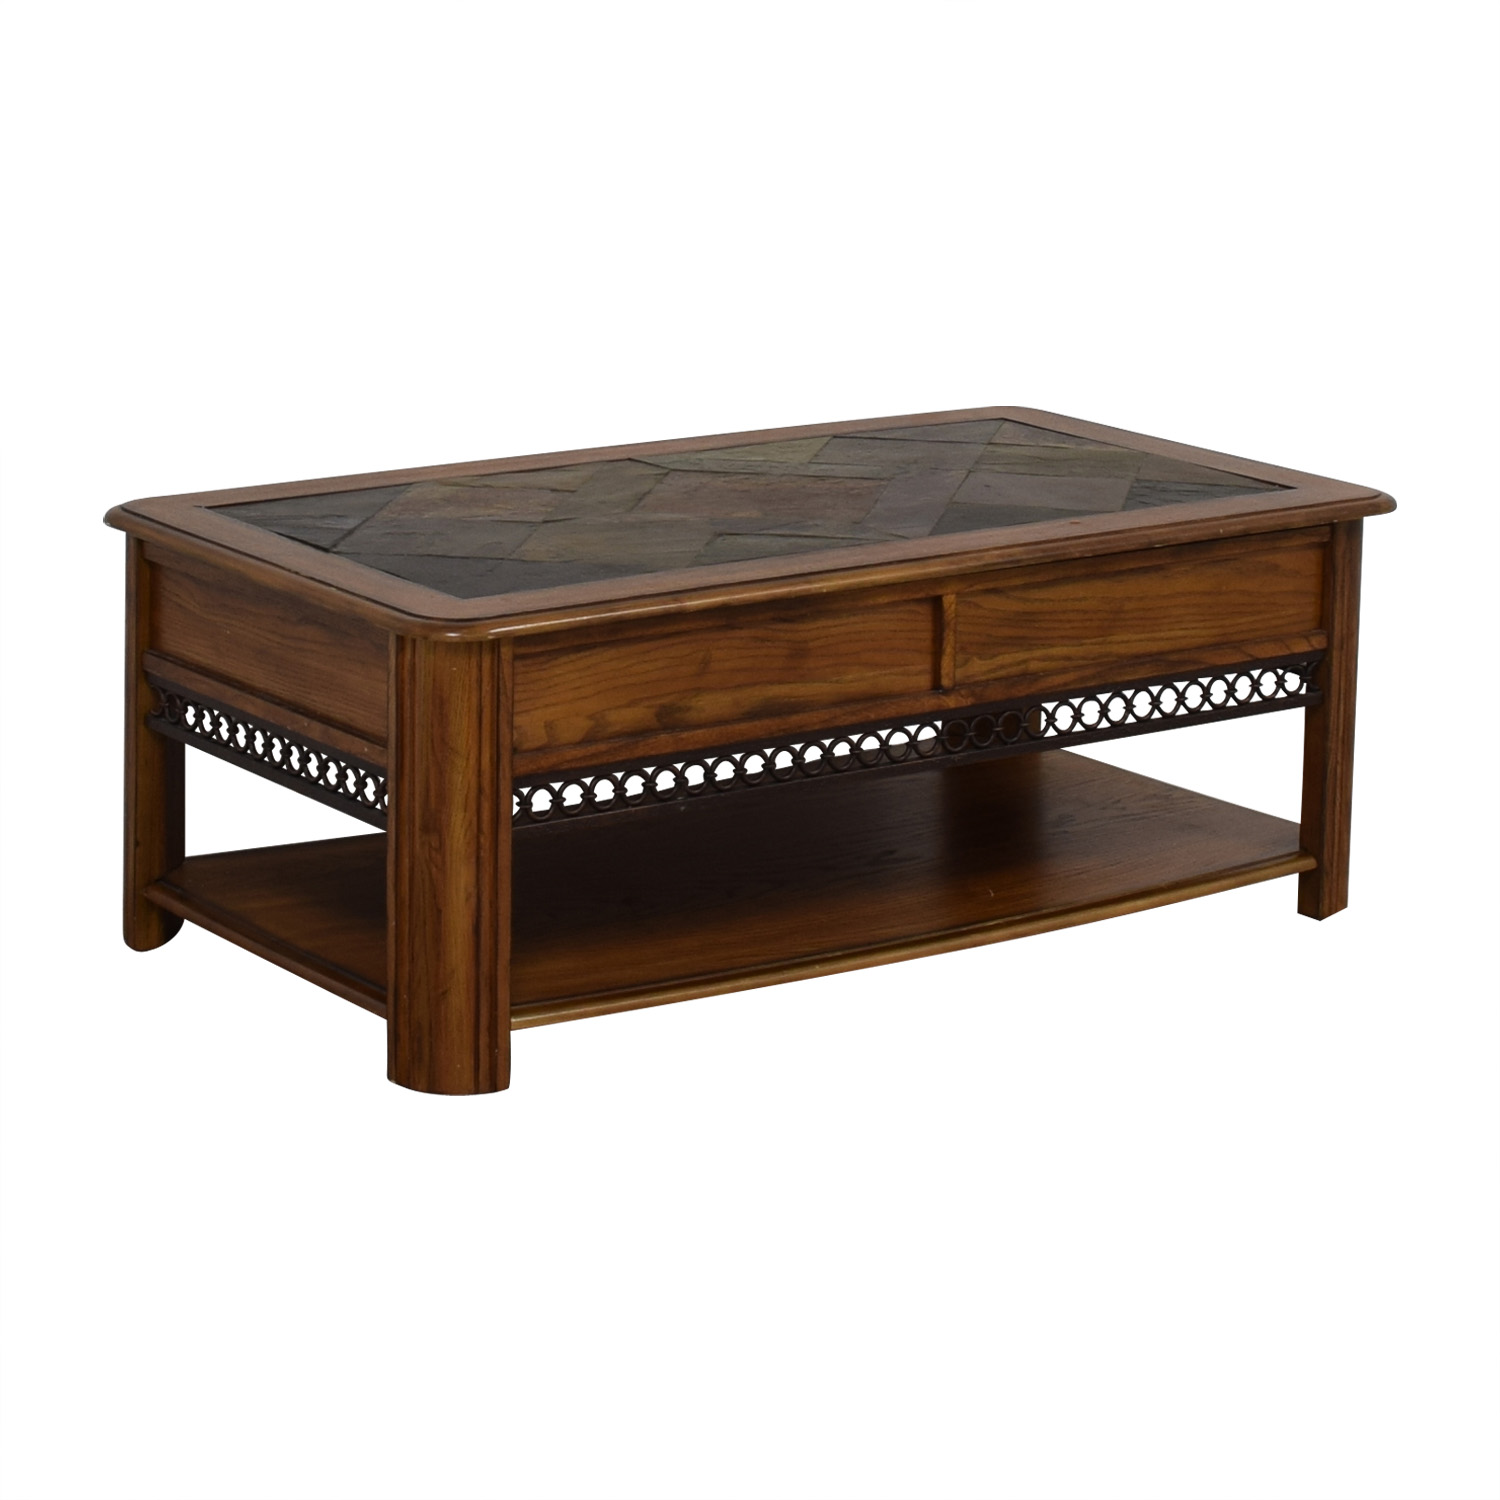 buy Raymour & Flanigan Raymour & Flanigan Lift Top Wood Coffee Table online